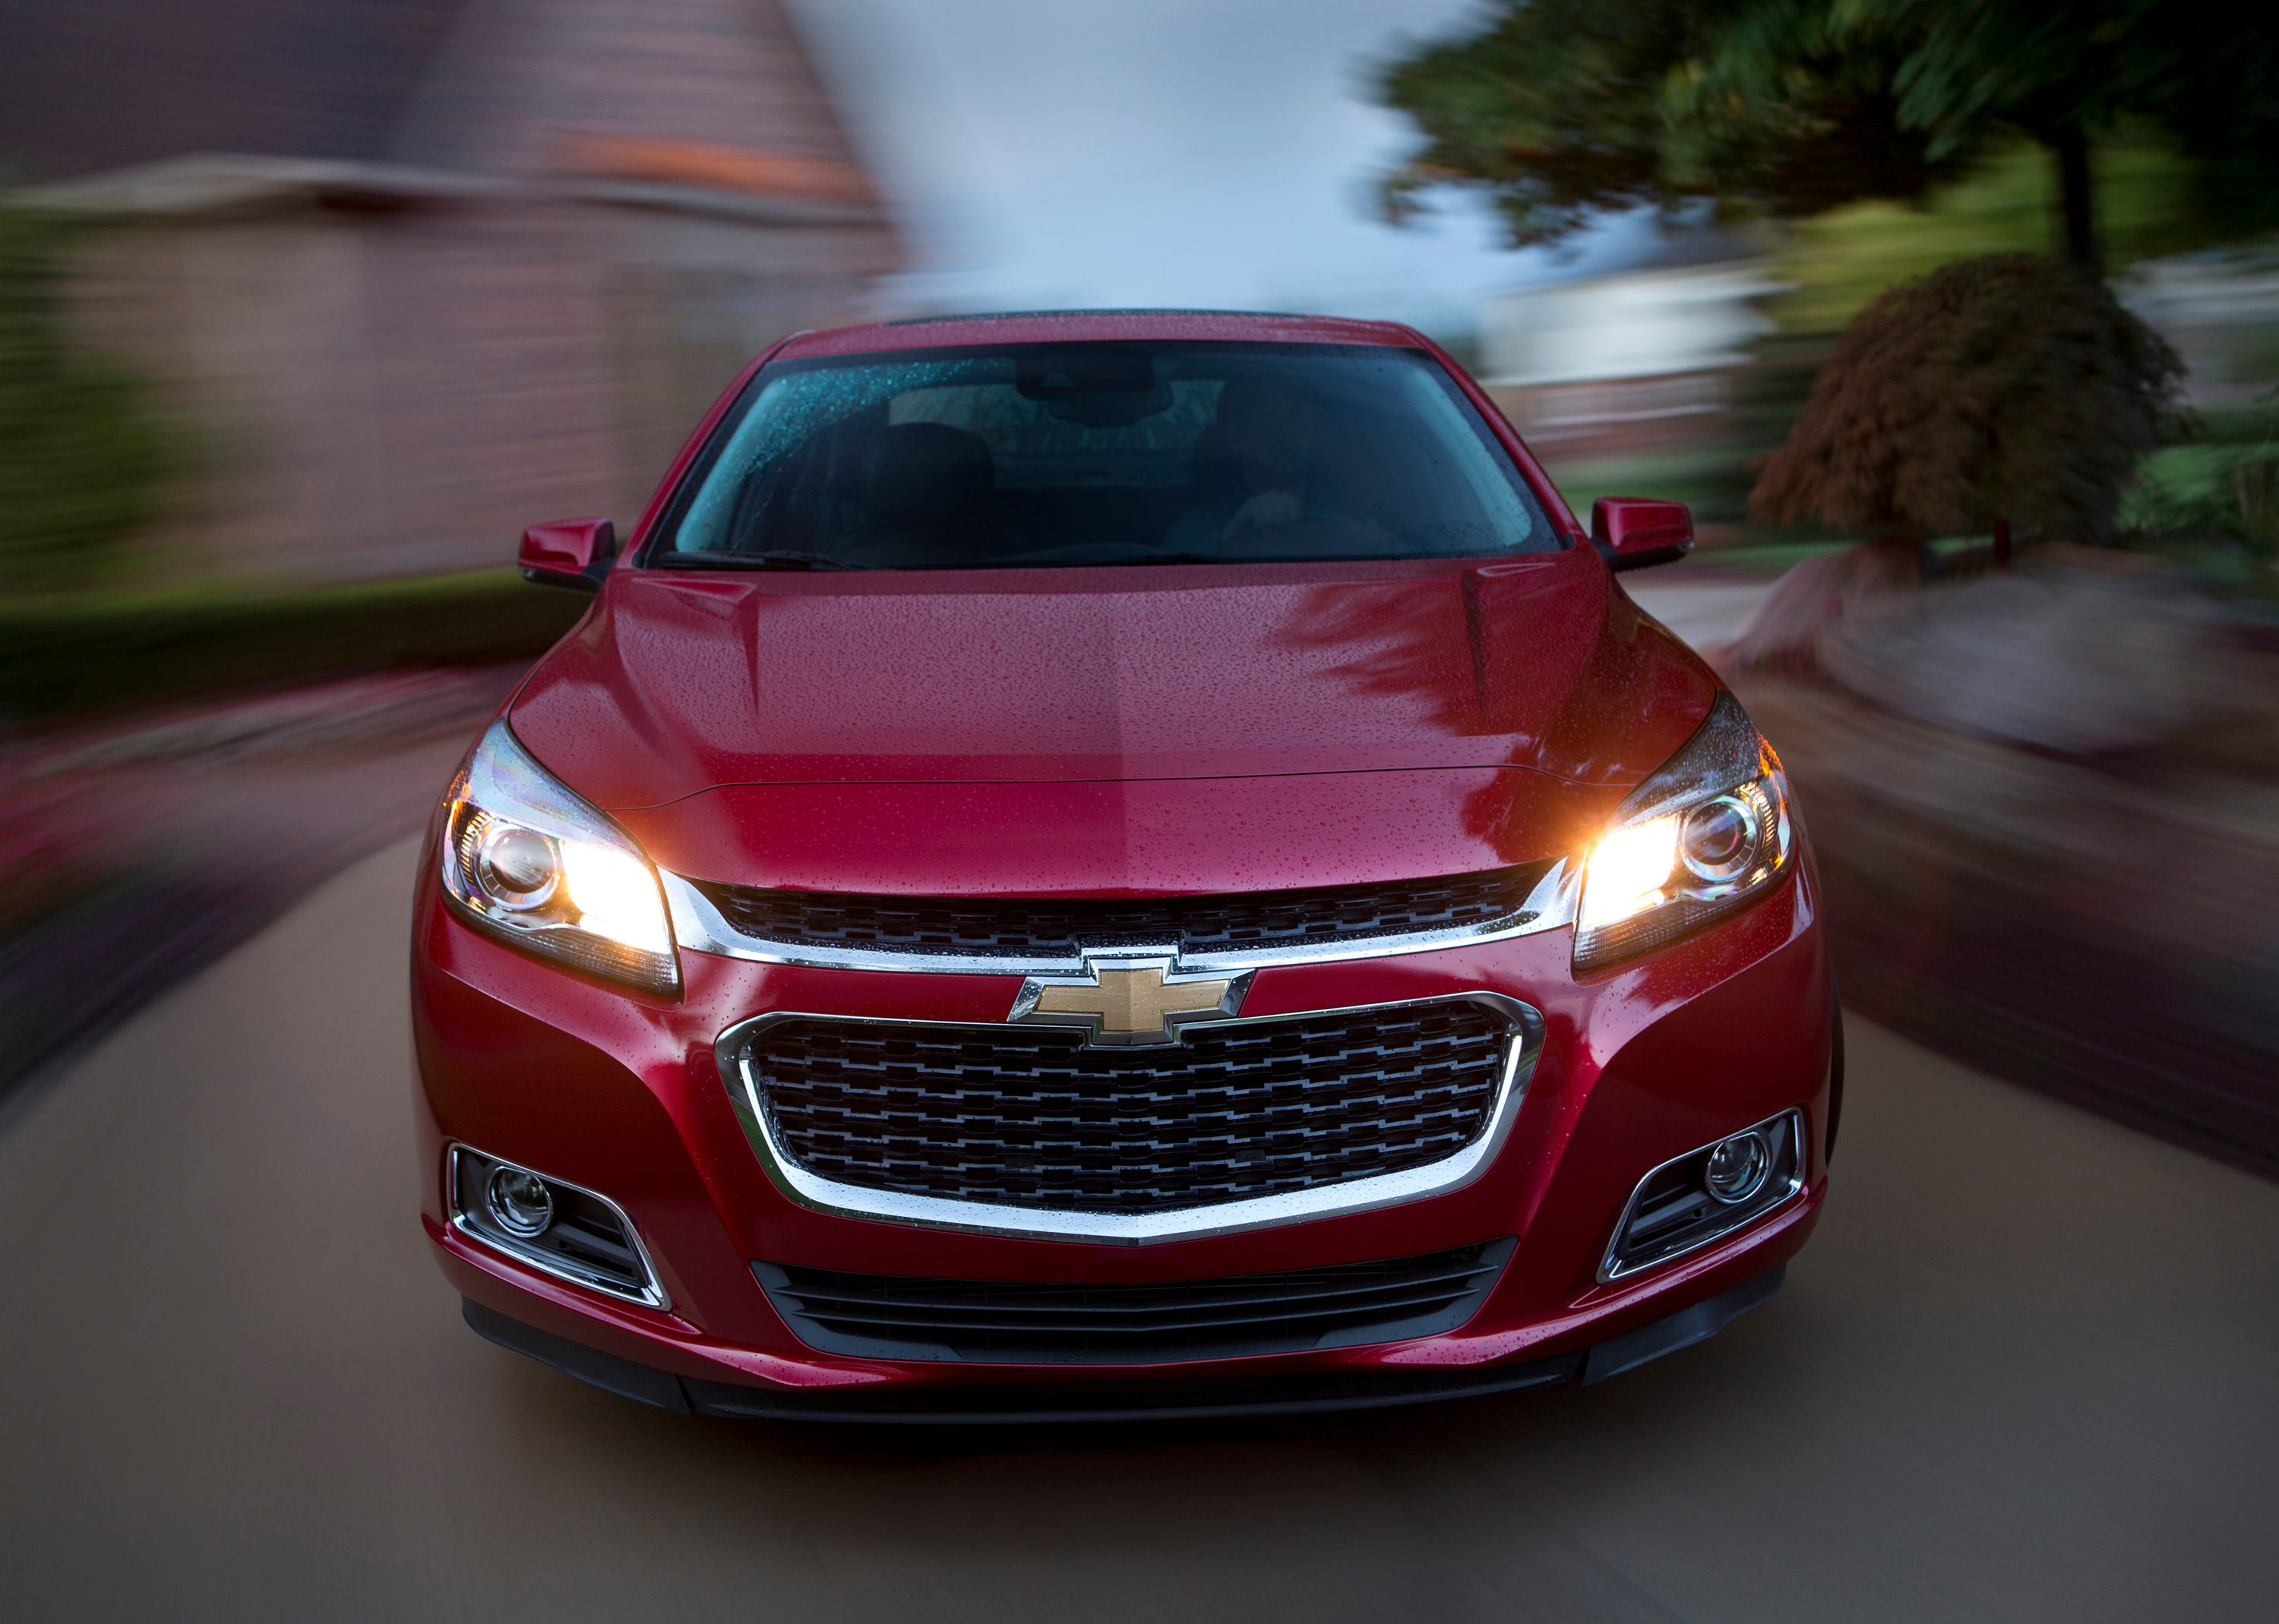 Auto Review: 2014 Chevrolet Malibu Is A Historic Value Compared To Its  Forefathers